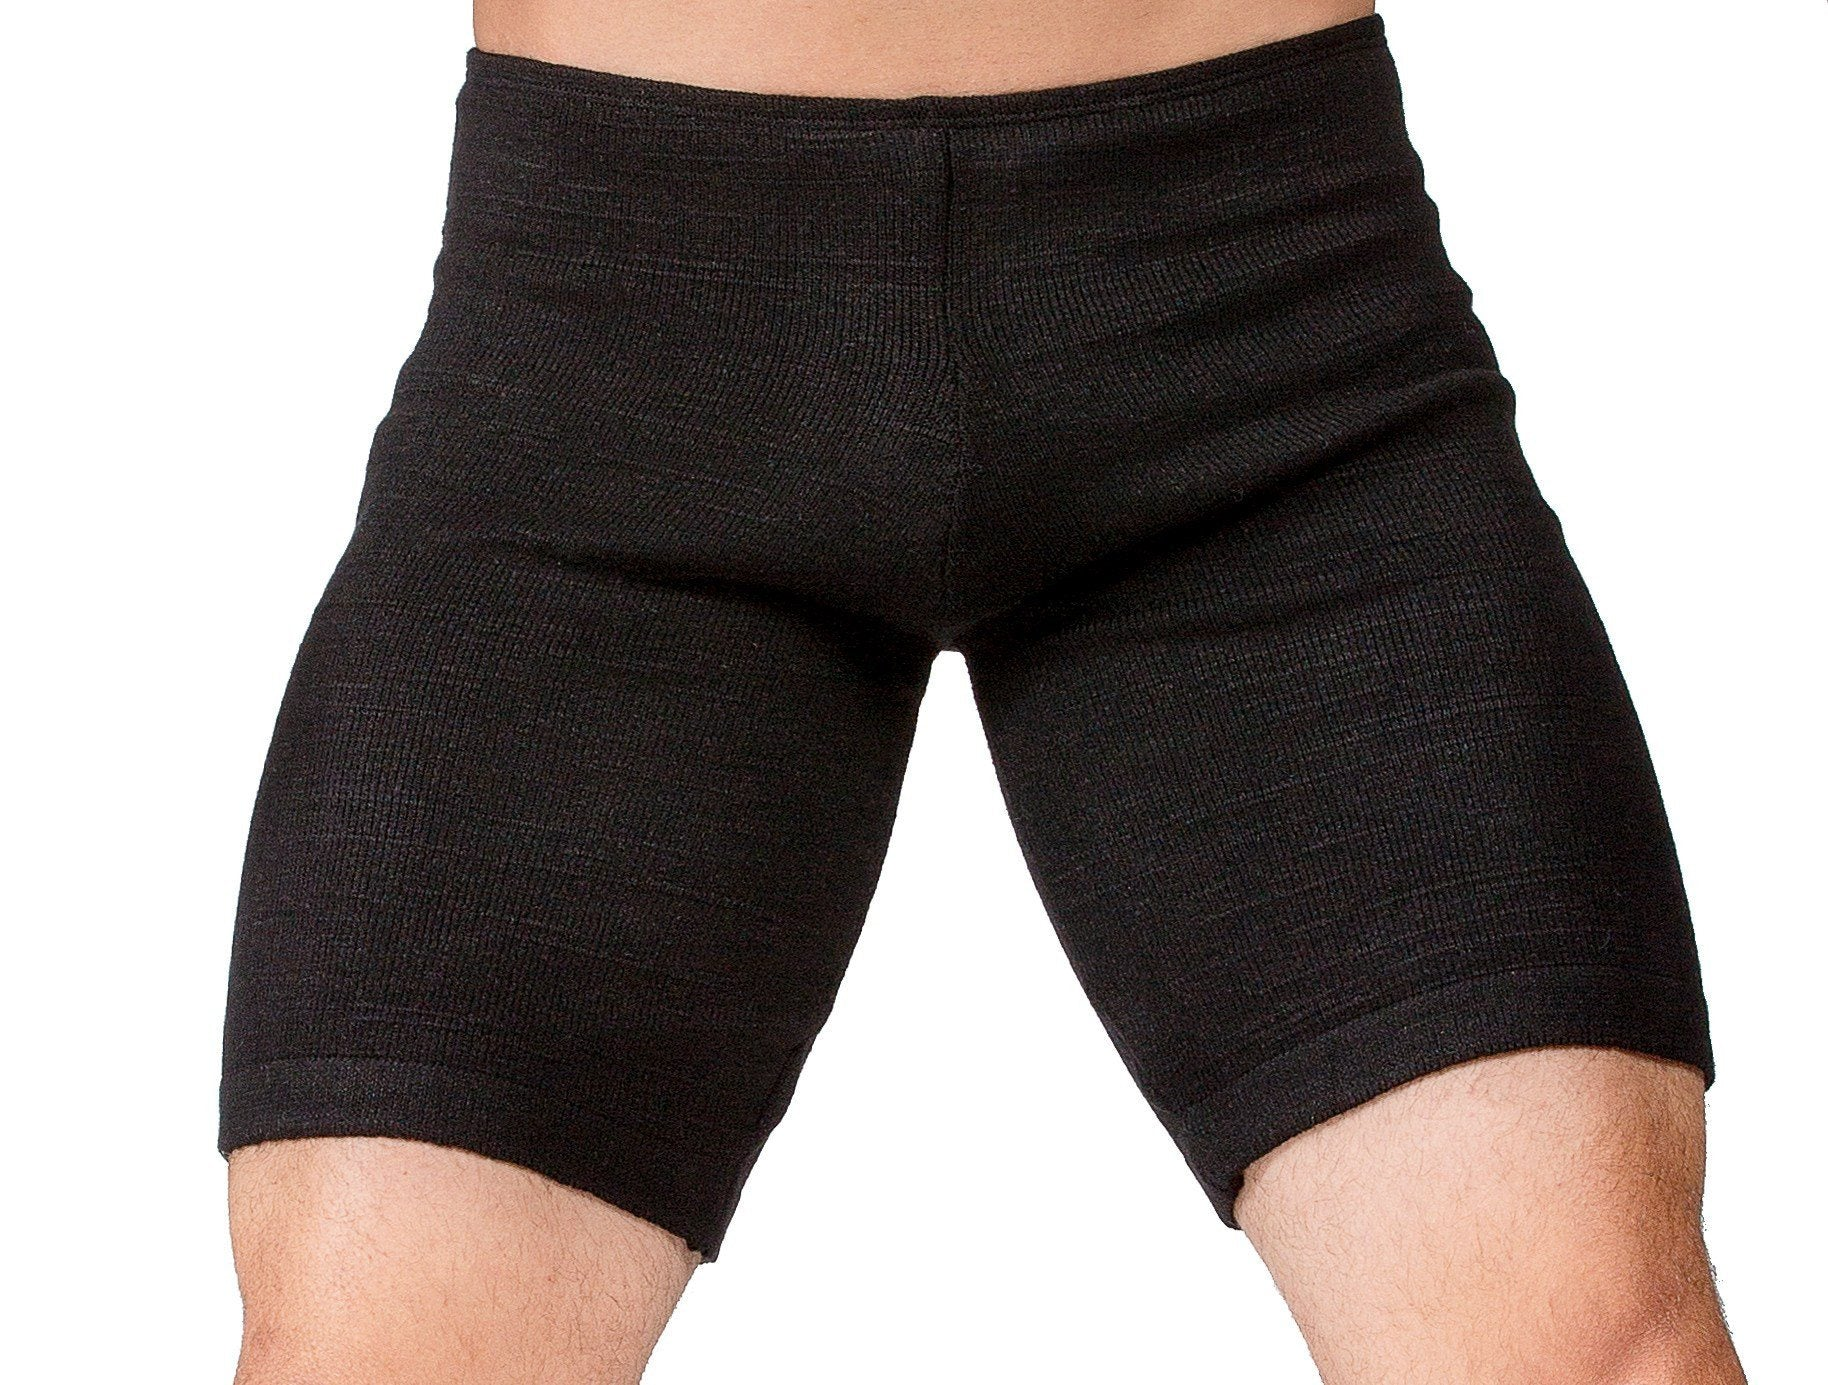 Extra Small / New York Black Men's Dance Shorts / Men's Dancewear @KDdanceNewYork #MadeInUSA - 1